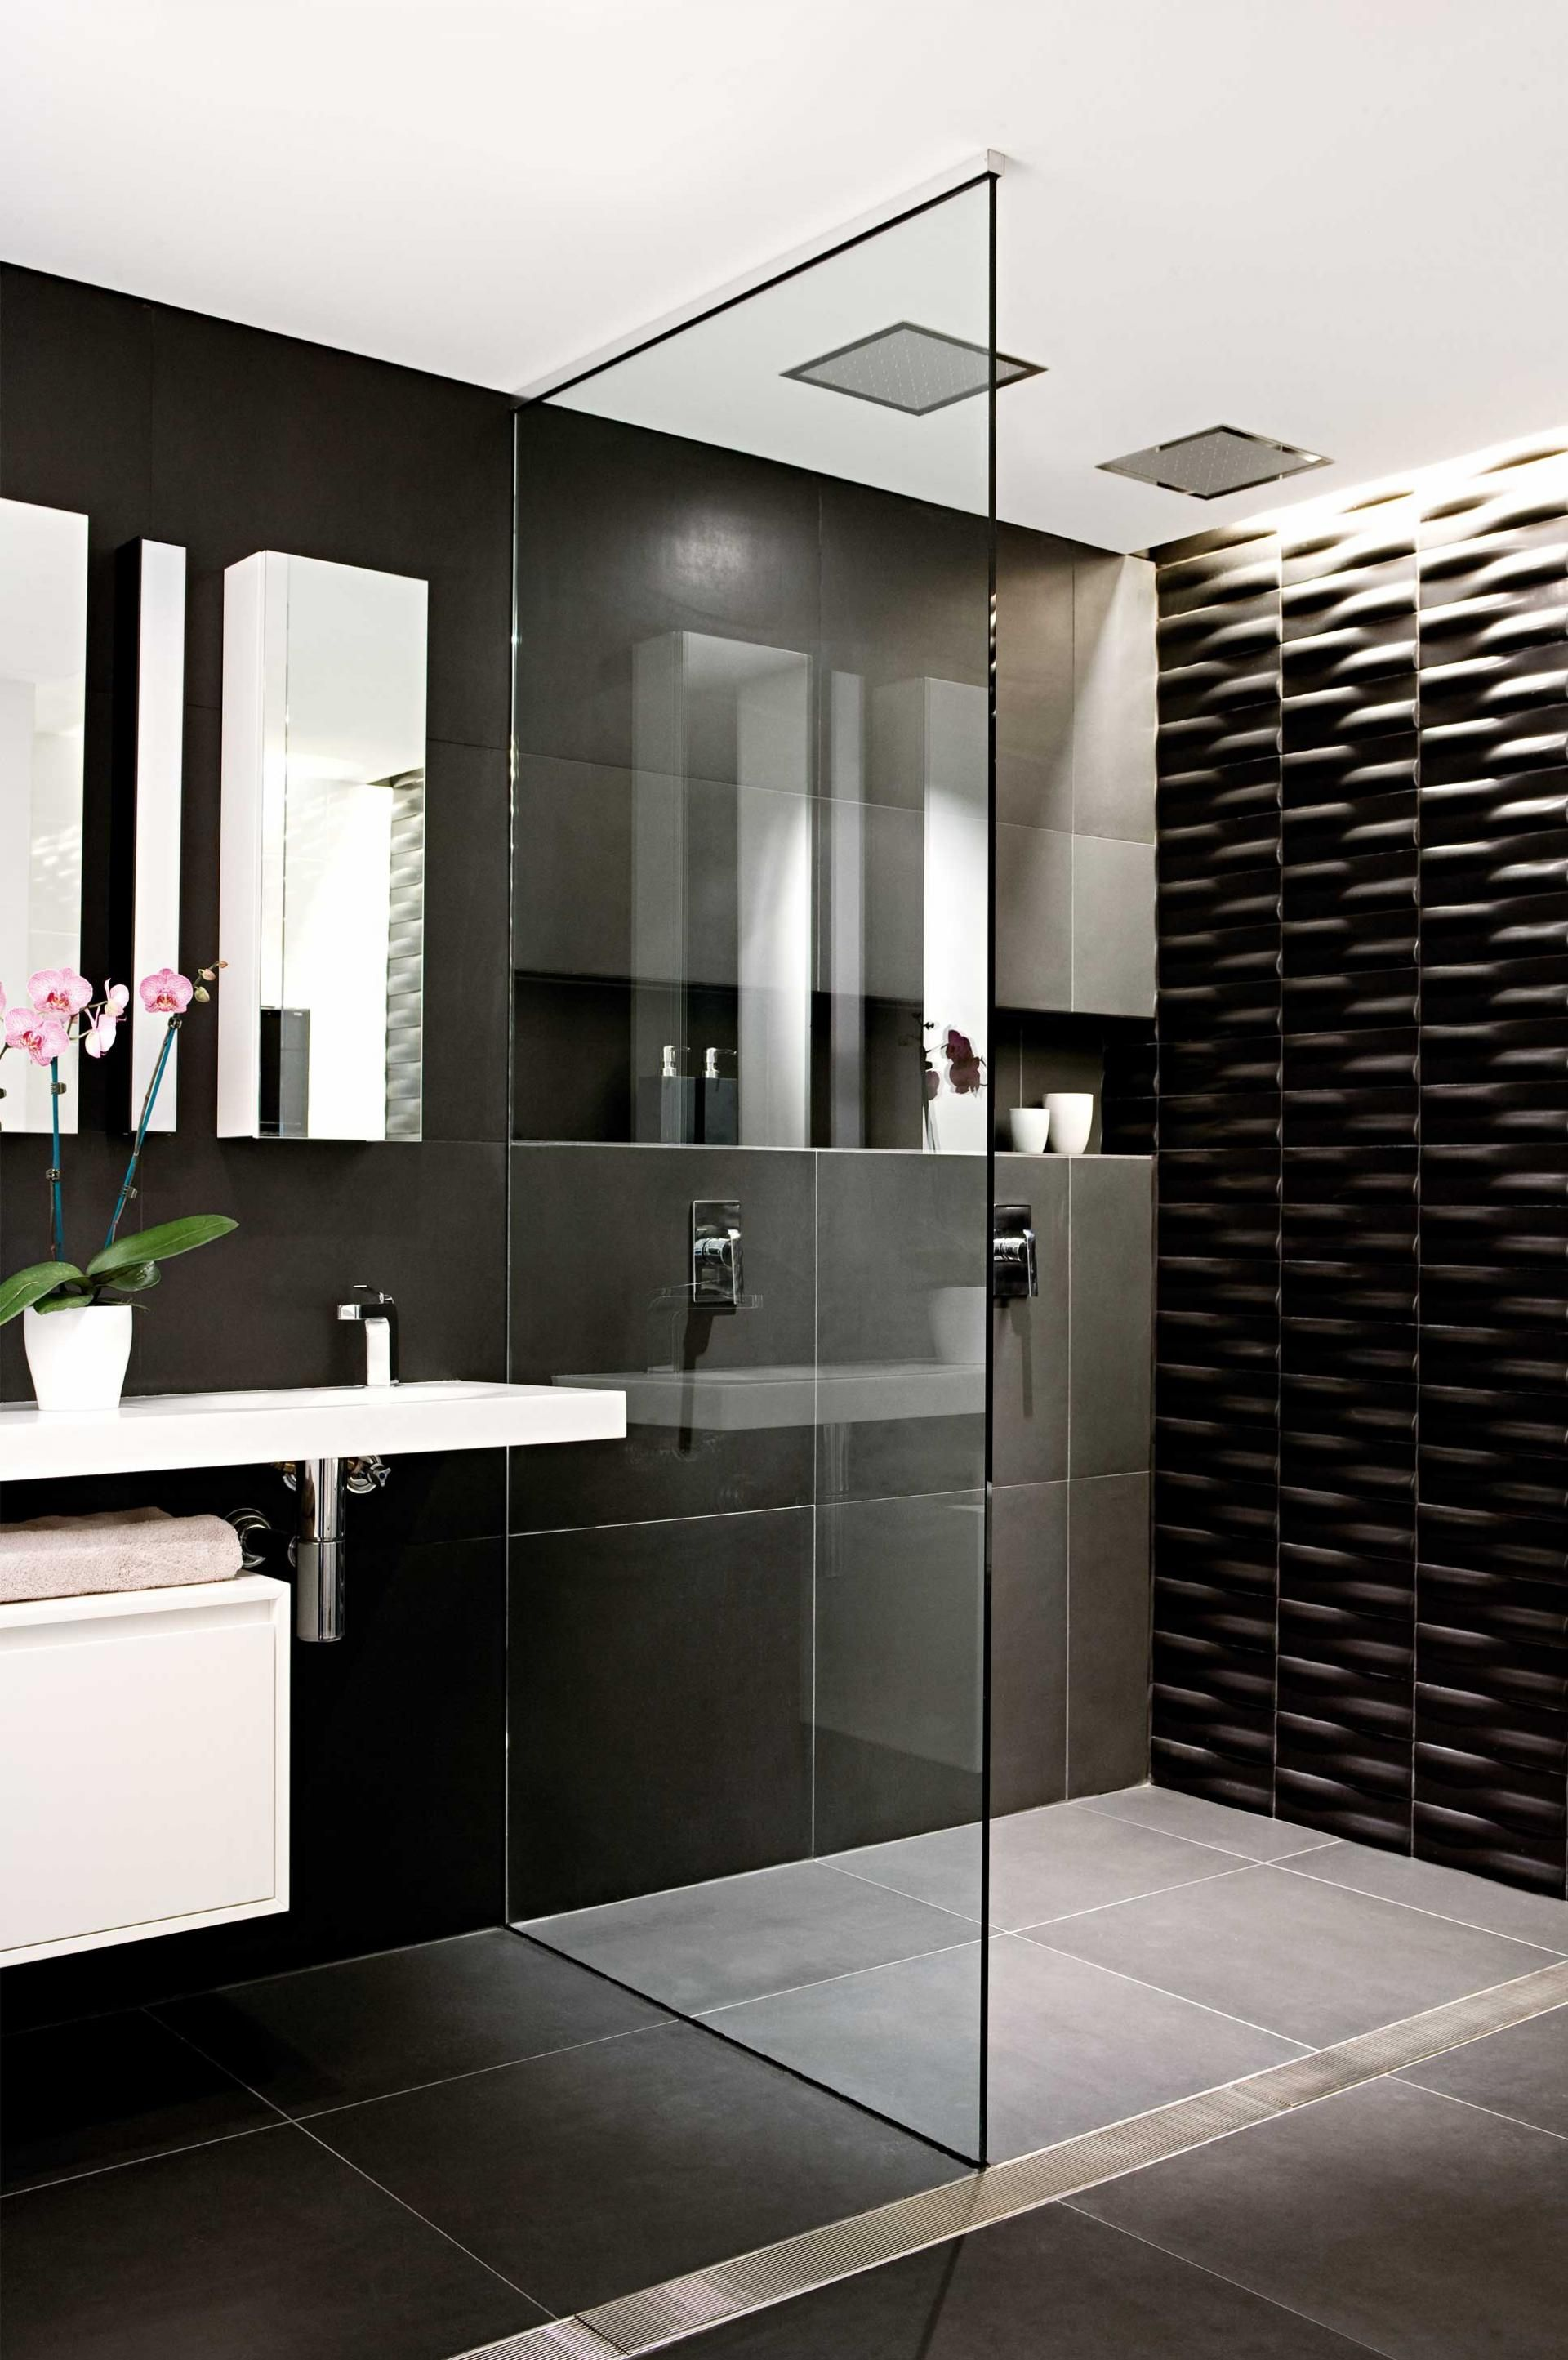 10 Black White Bathrooms White Bathroom Decor Gray Bathroom Decor Bathroom Interior